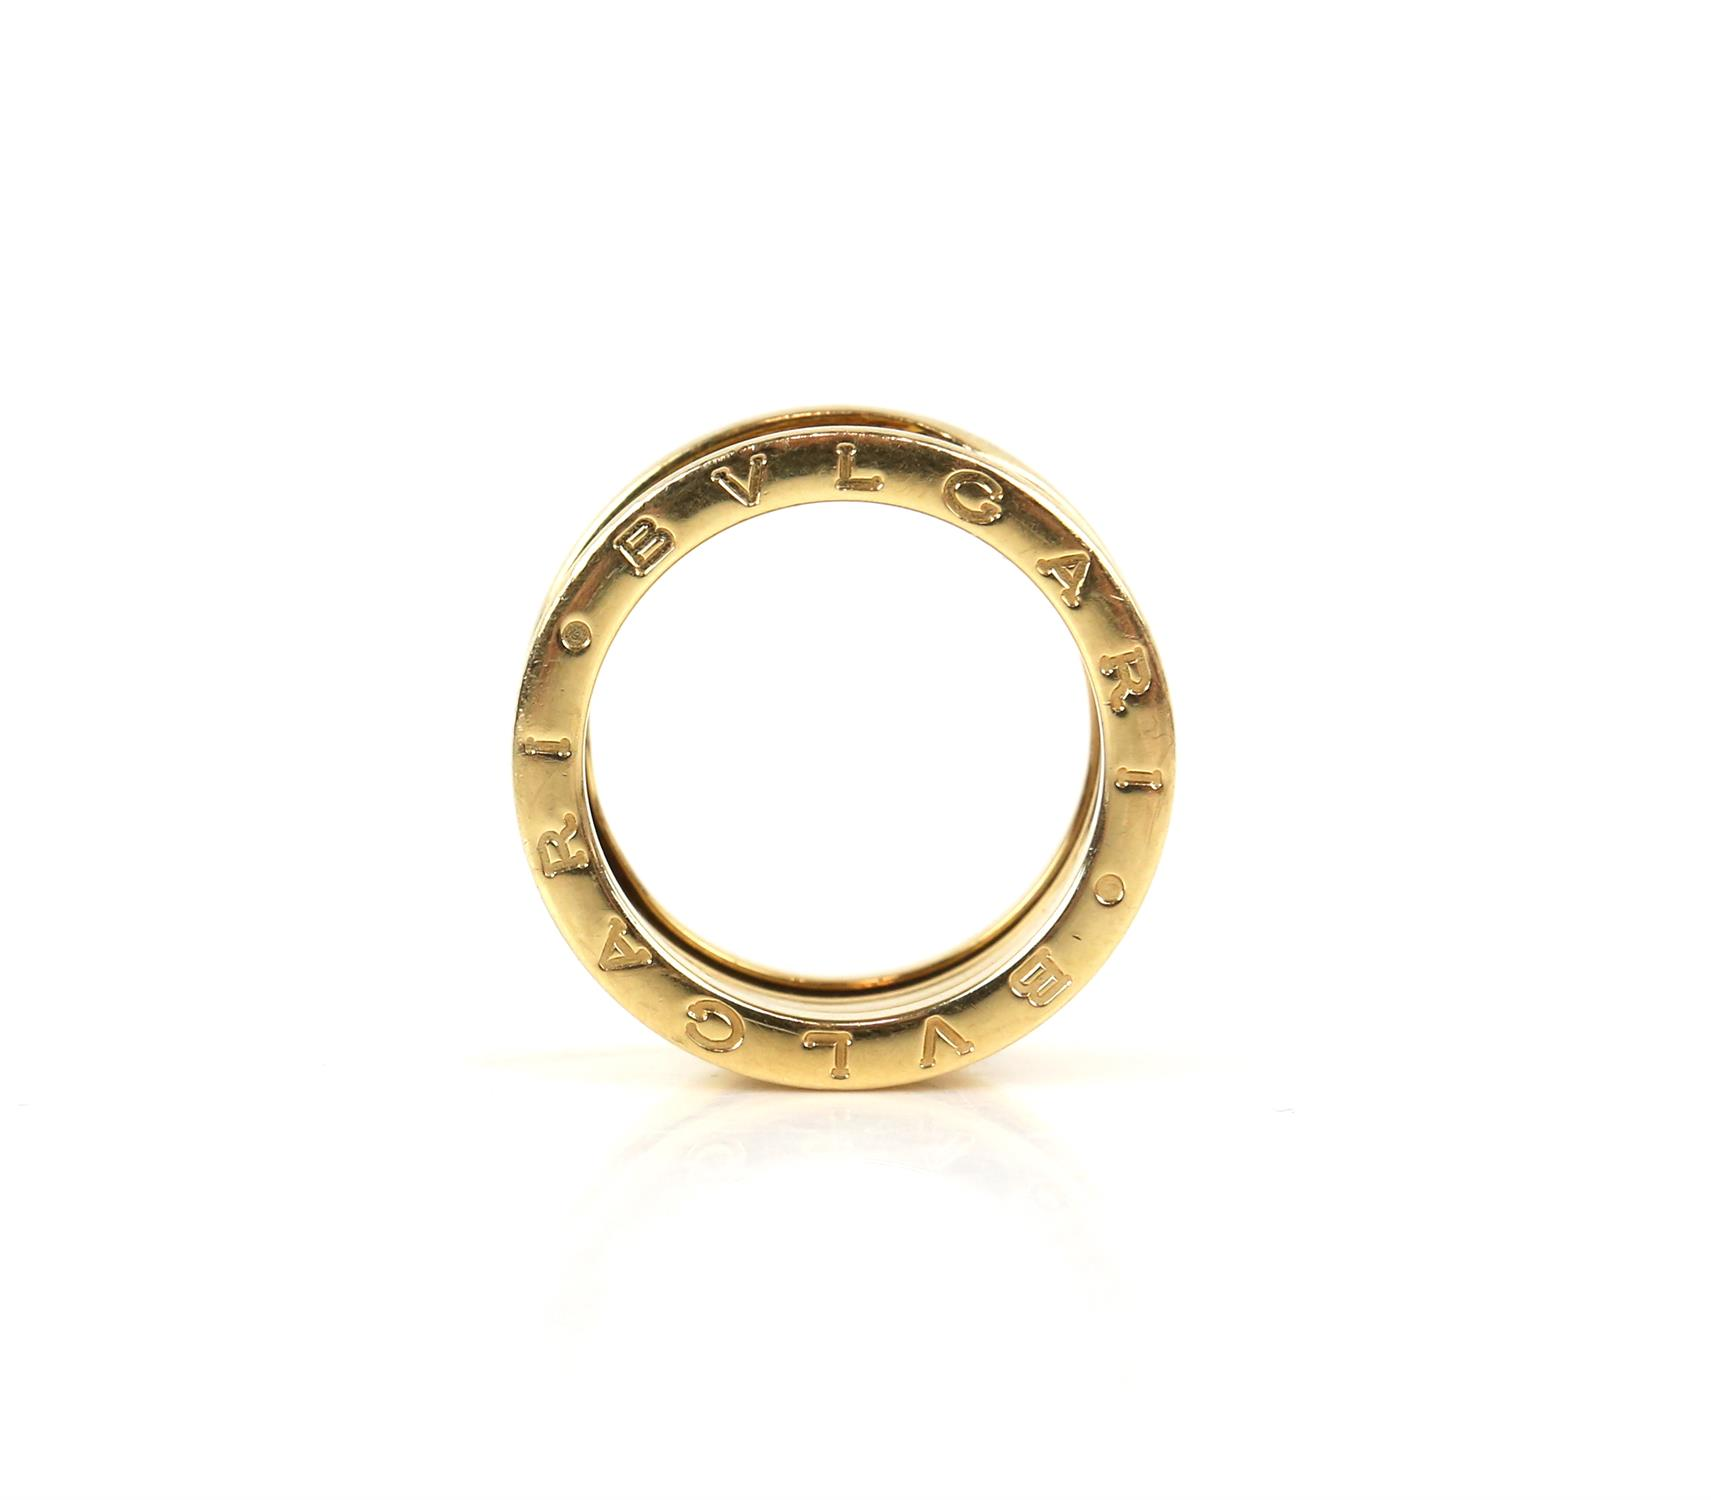 Bvlgari B.Zero1 four band ring, inside band marked Made in Italy 750, with Bvlgari makers mark, - Image 2 of 6